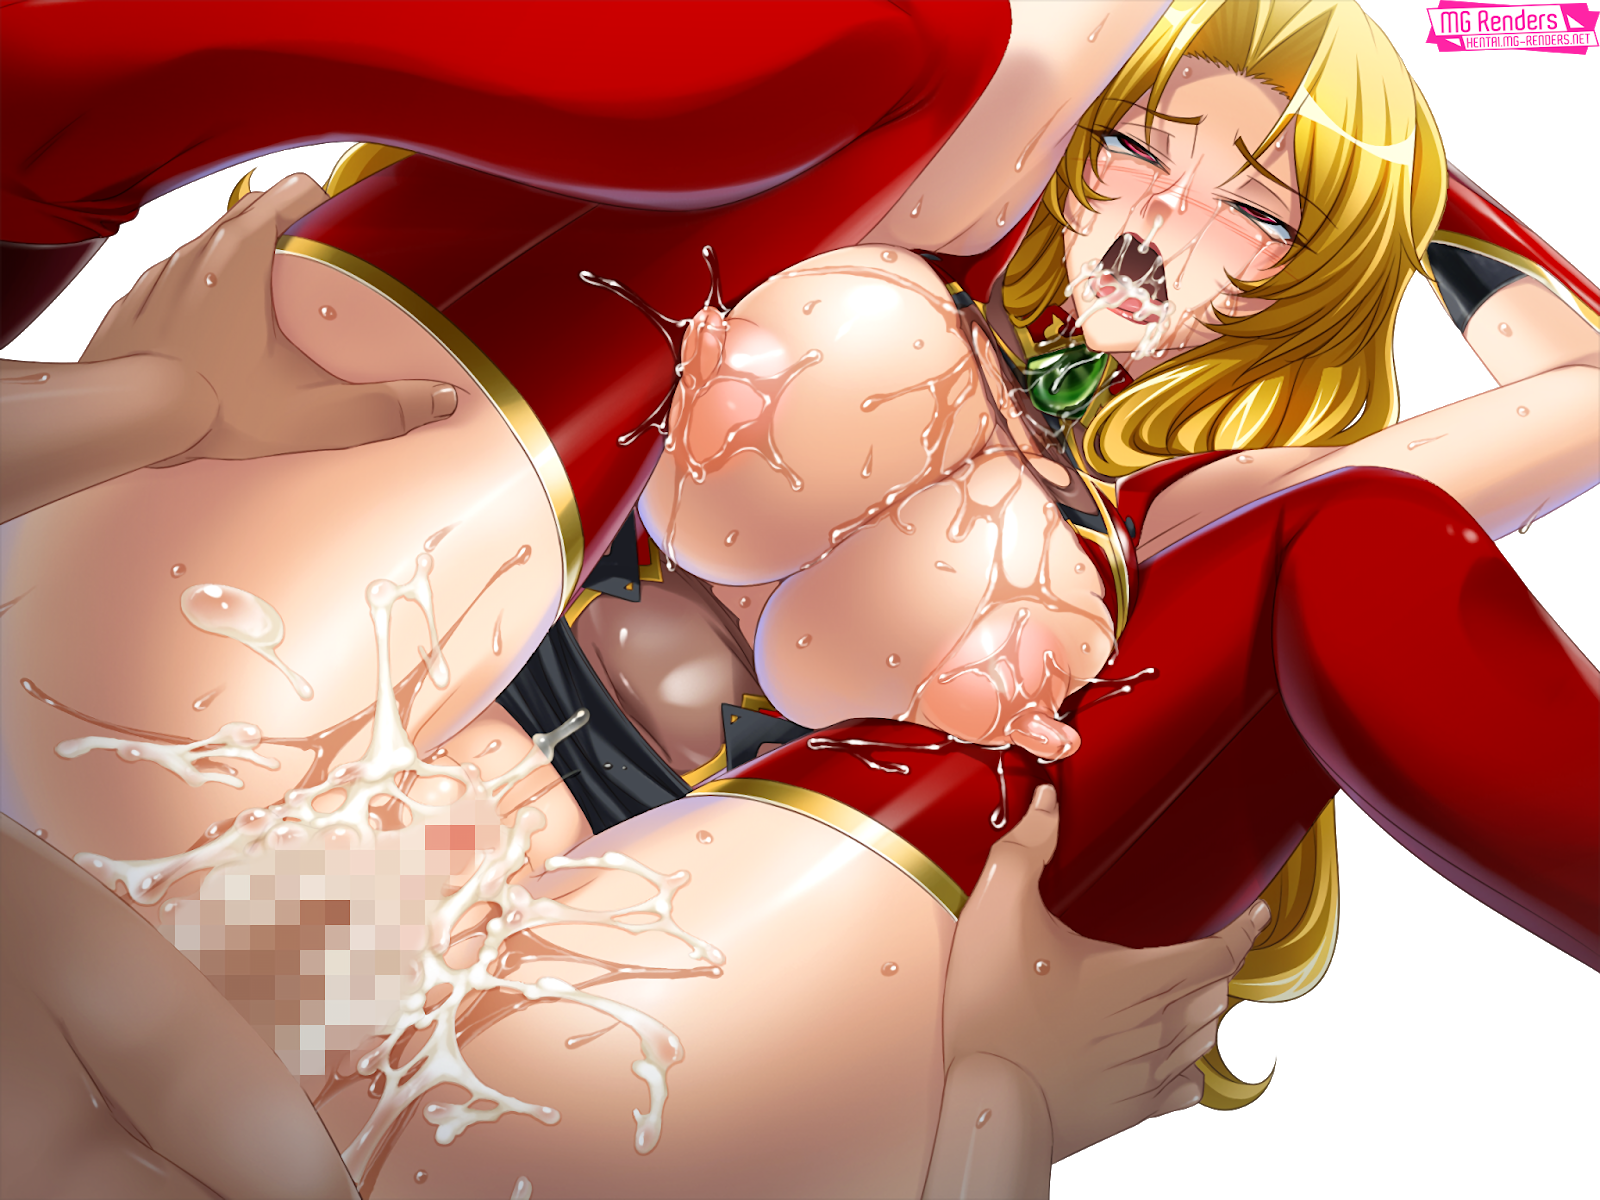 Tags: Anime, Render,  Ahegao,  Alicia Viewstream,  Huge Breasts,  Kagami,  Kangoku Senkan 2,  Lactation,  No bra,  No panties,  Saliva,  Semen,  Spread Legs,  Vagina,  Vaginal Sex, PNG, Image, Picture